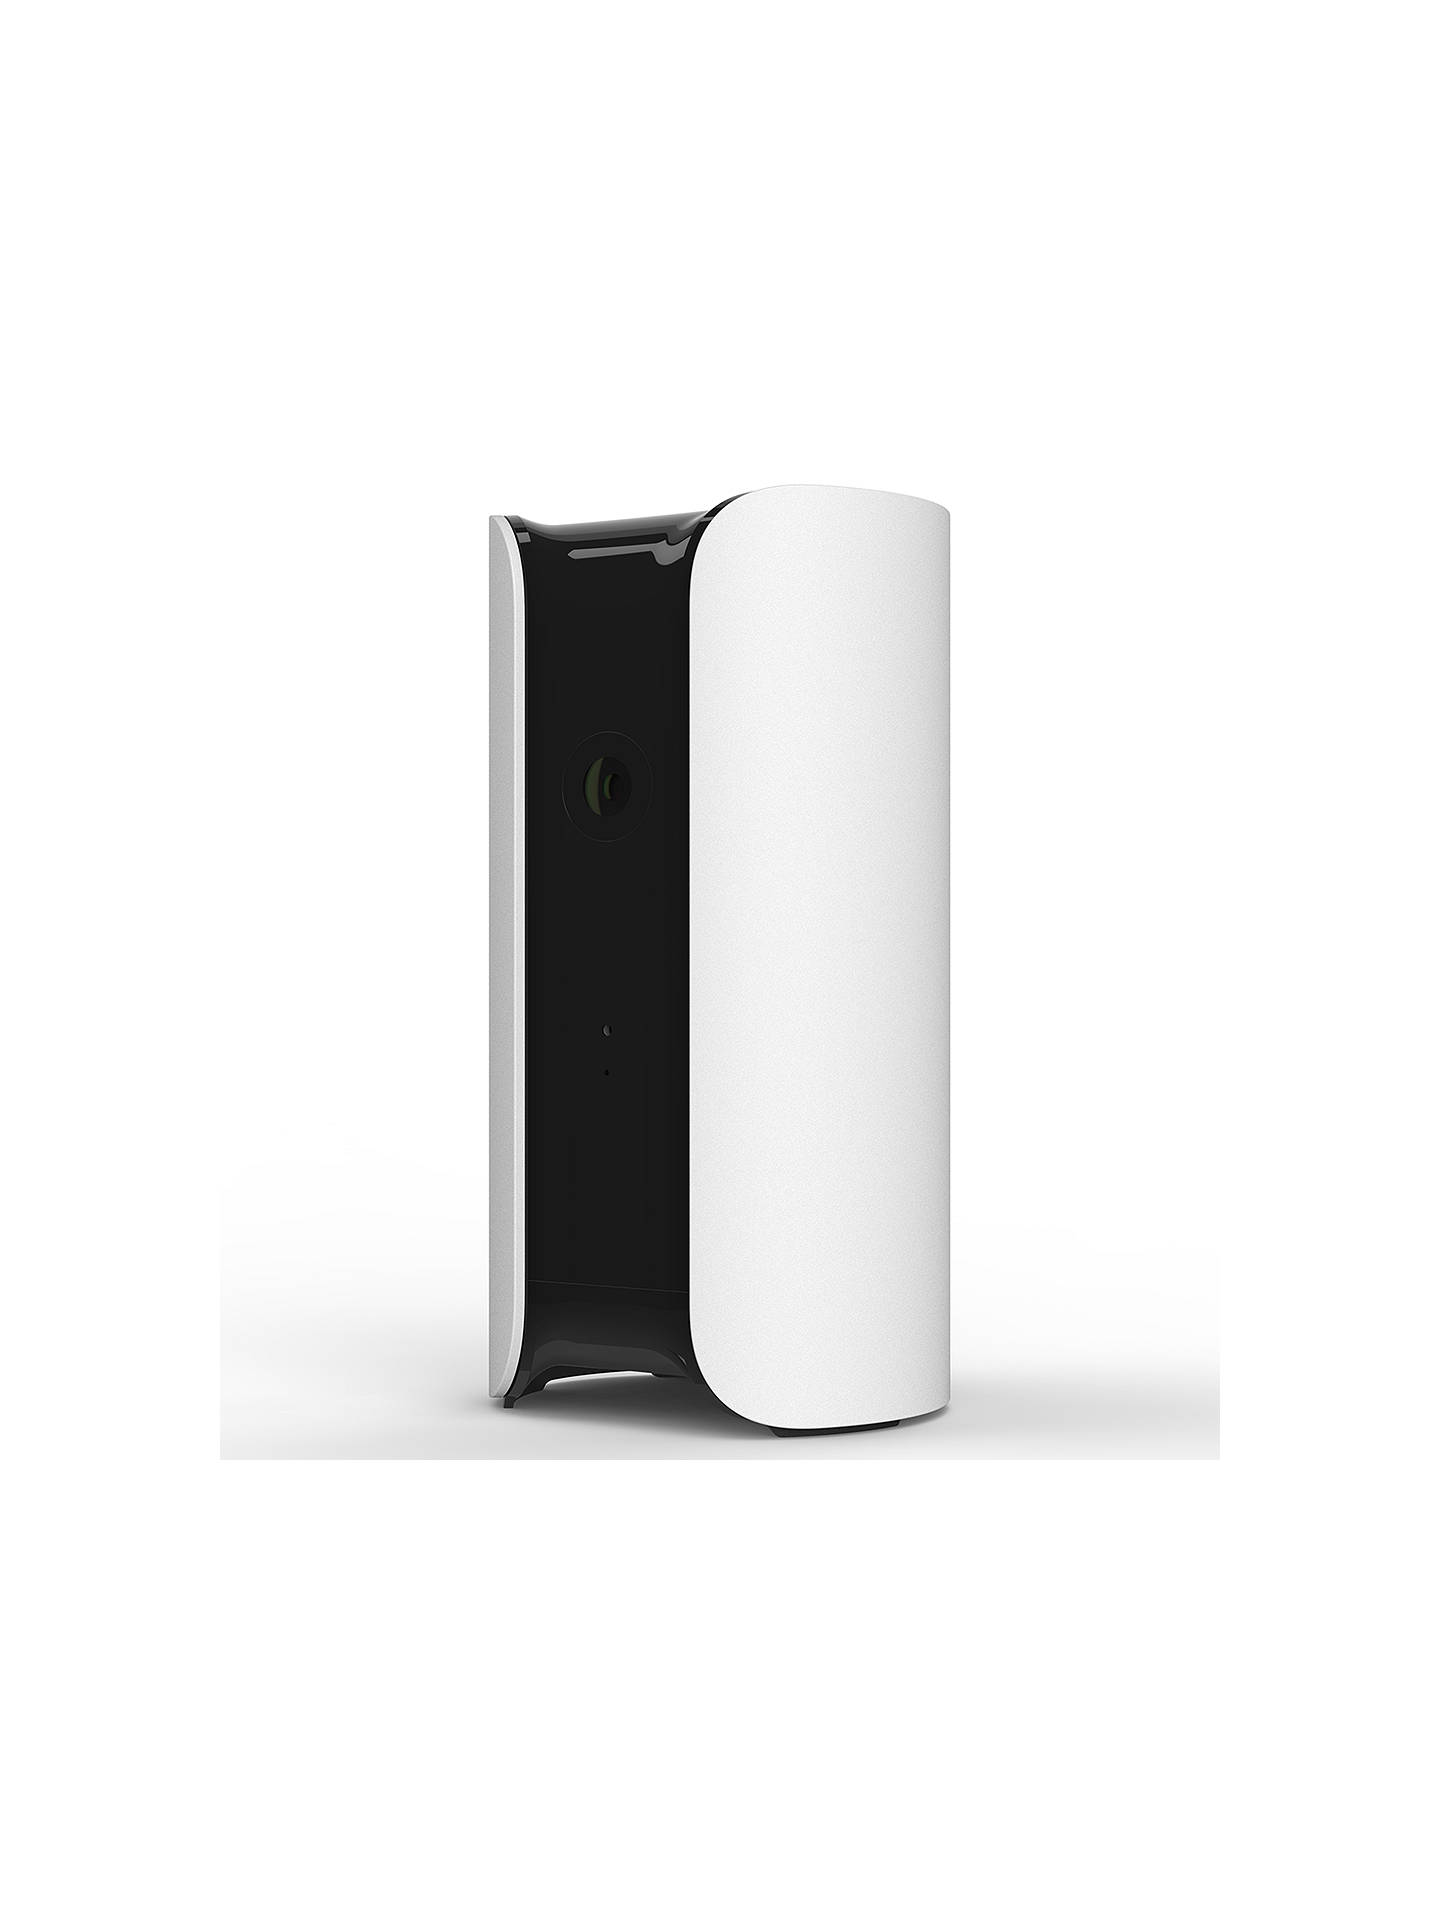 Buy Canary All-In-One Security System, White Online at johnlewis.com